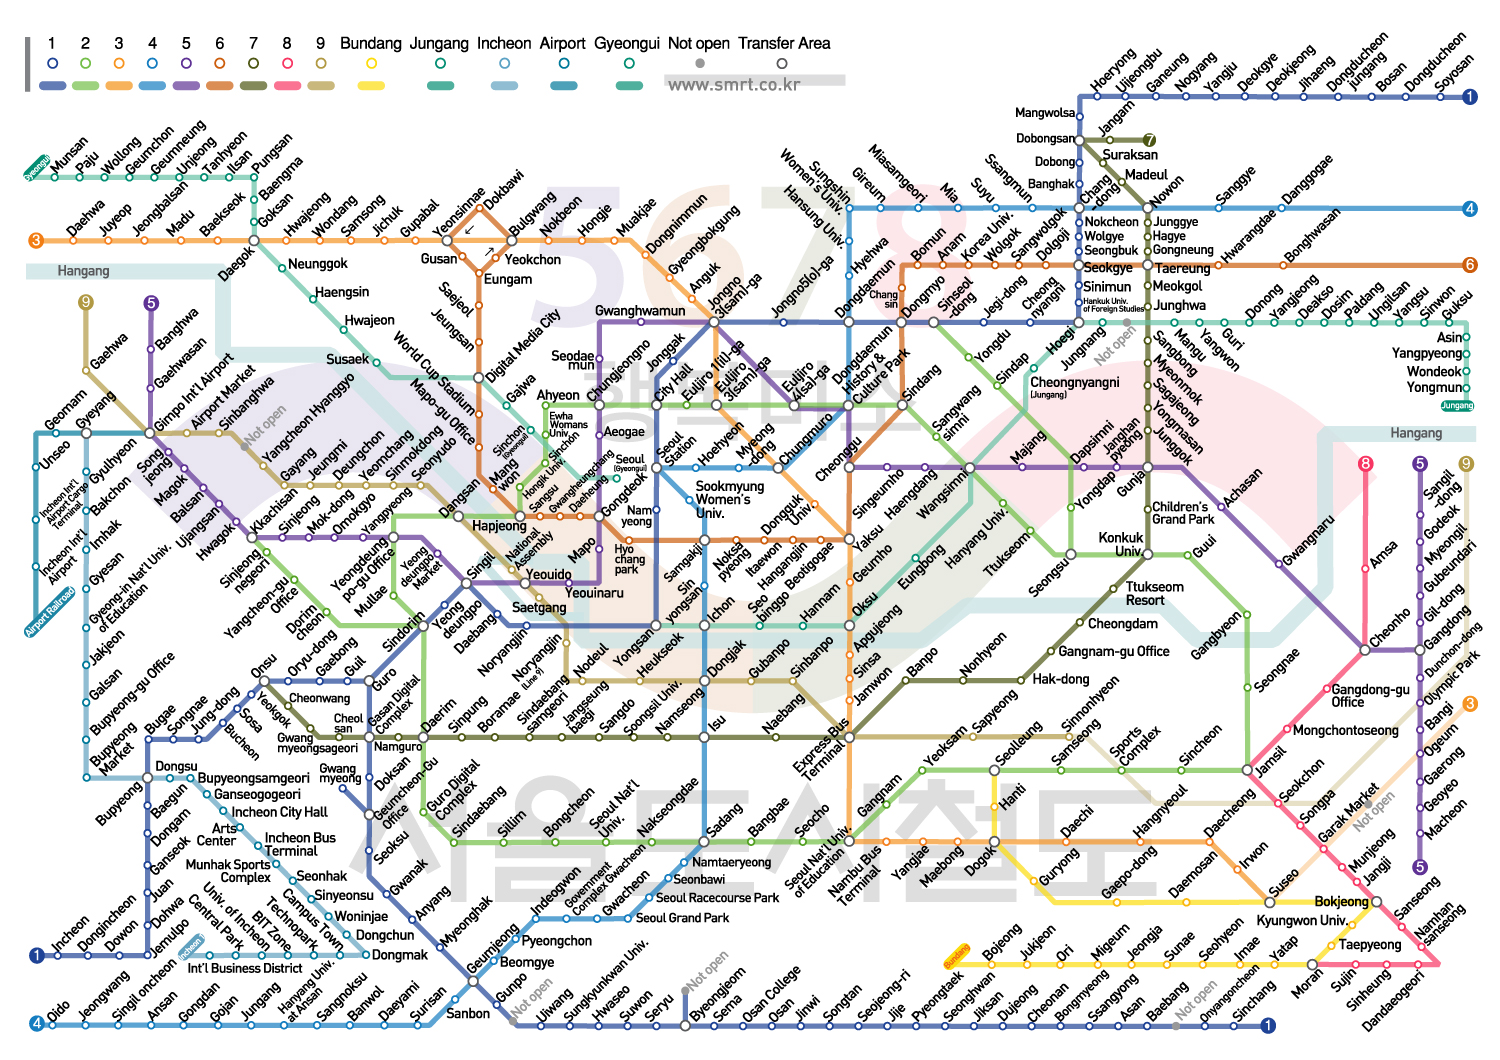 Seoul Subway Map Chinese.File Seoul Subway Map English 4259059378 Jpg Wikimedia Commons